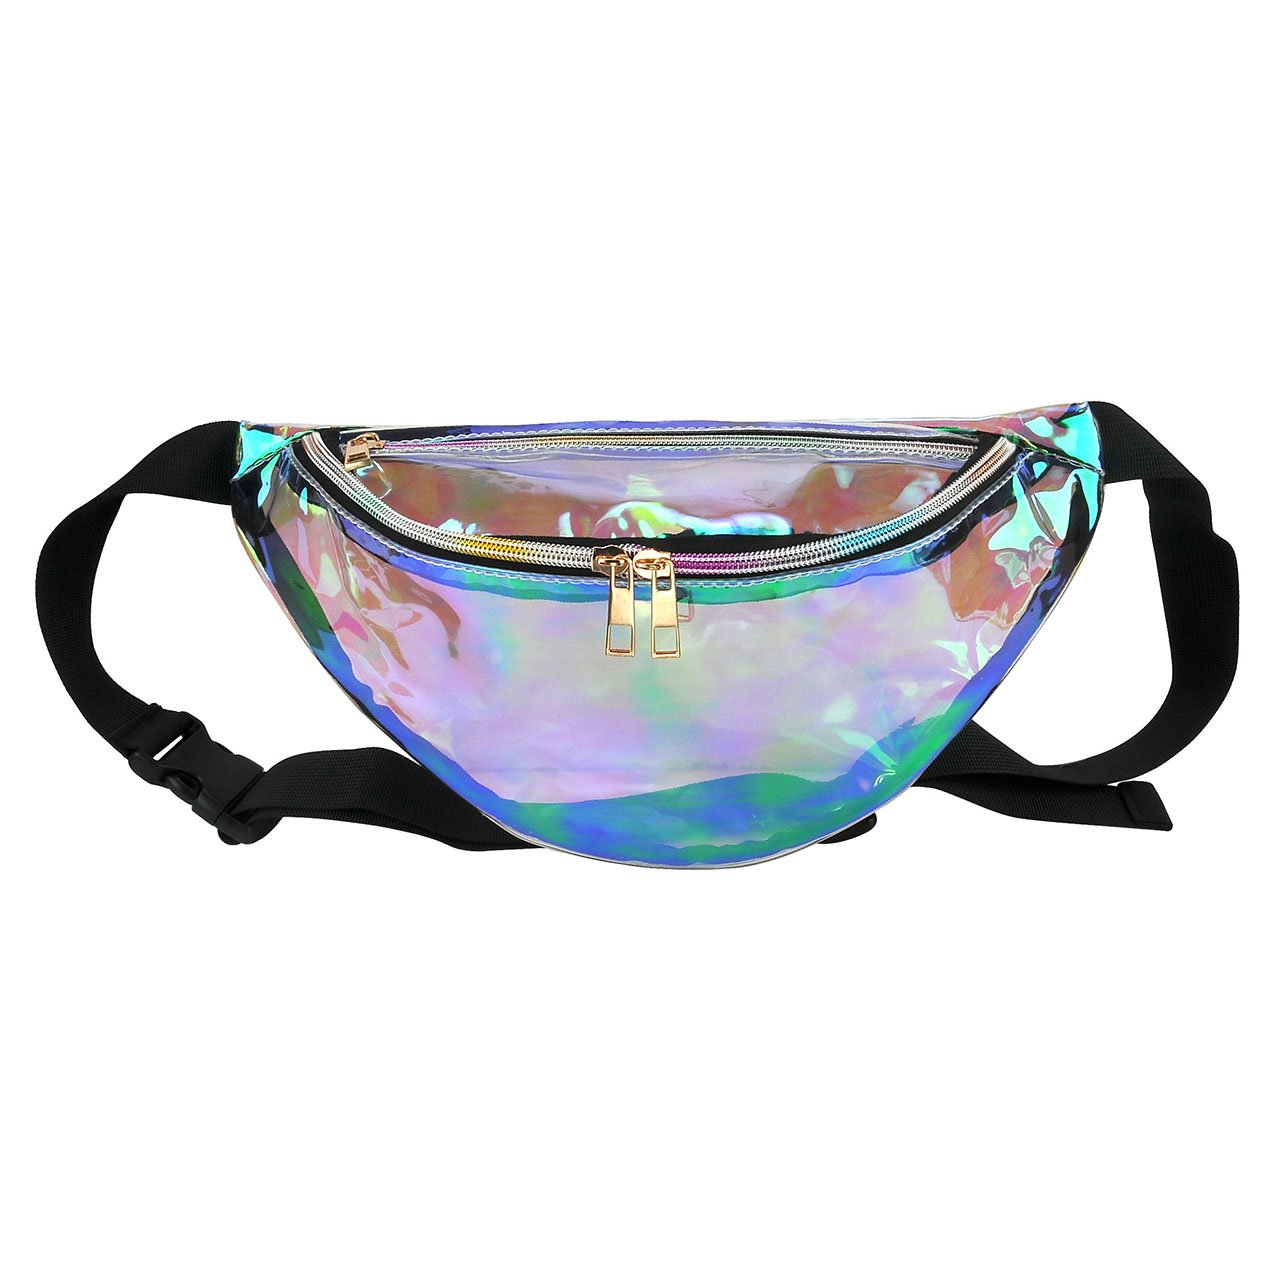 Faleto Womens Fashion Hologram Fanny Pack Bag Waist Pack Running Belt Purse Pouch for Cell Phone Holder with Zipper,Transparent